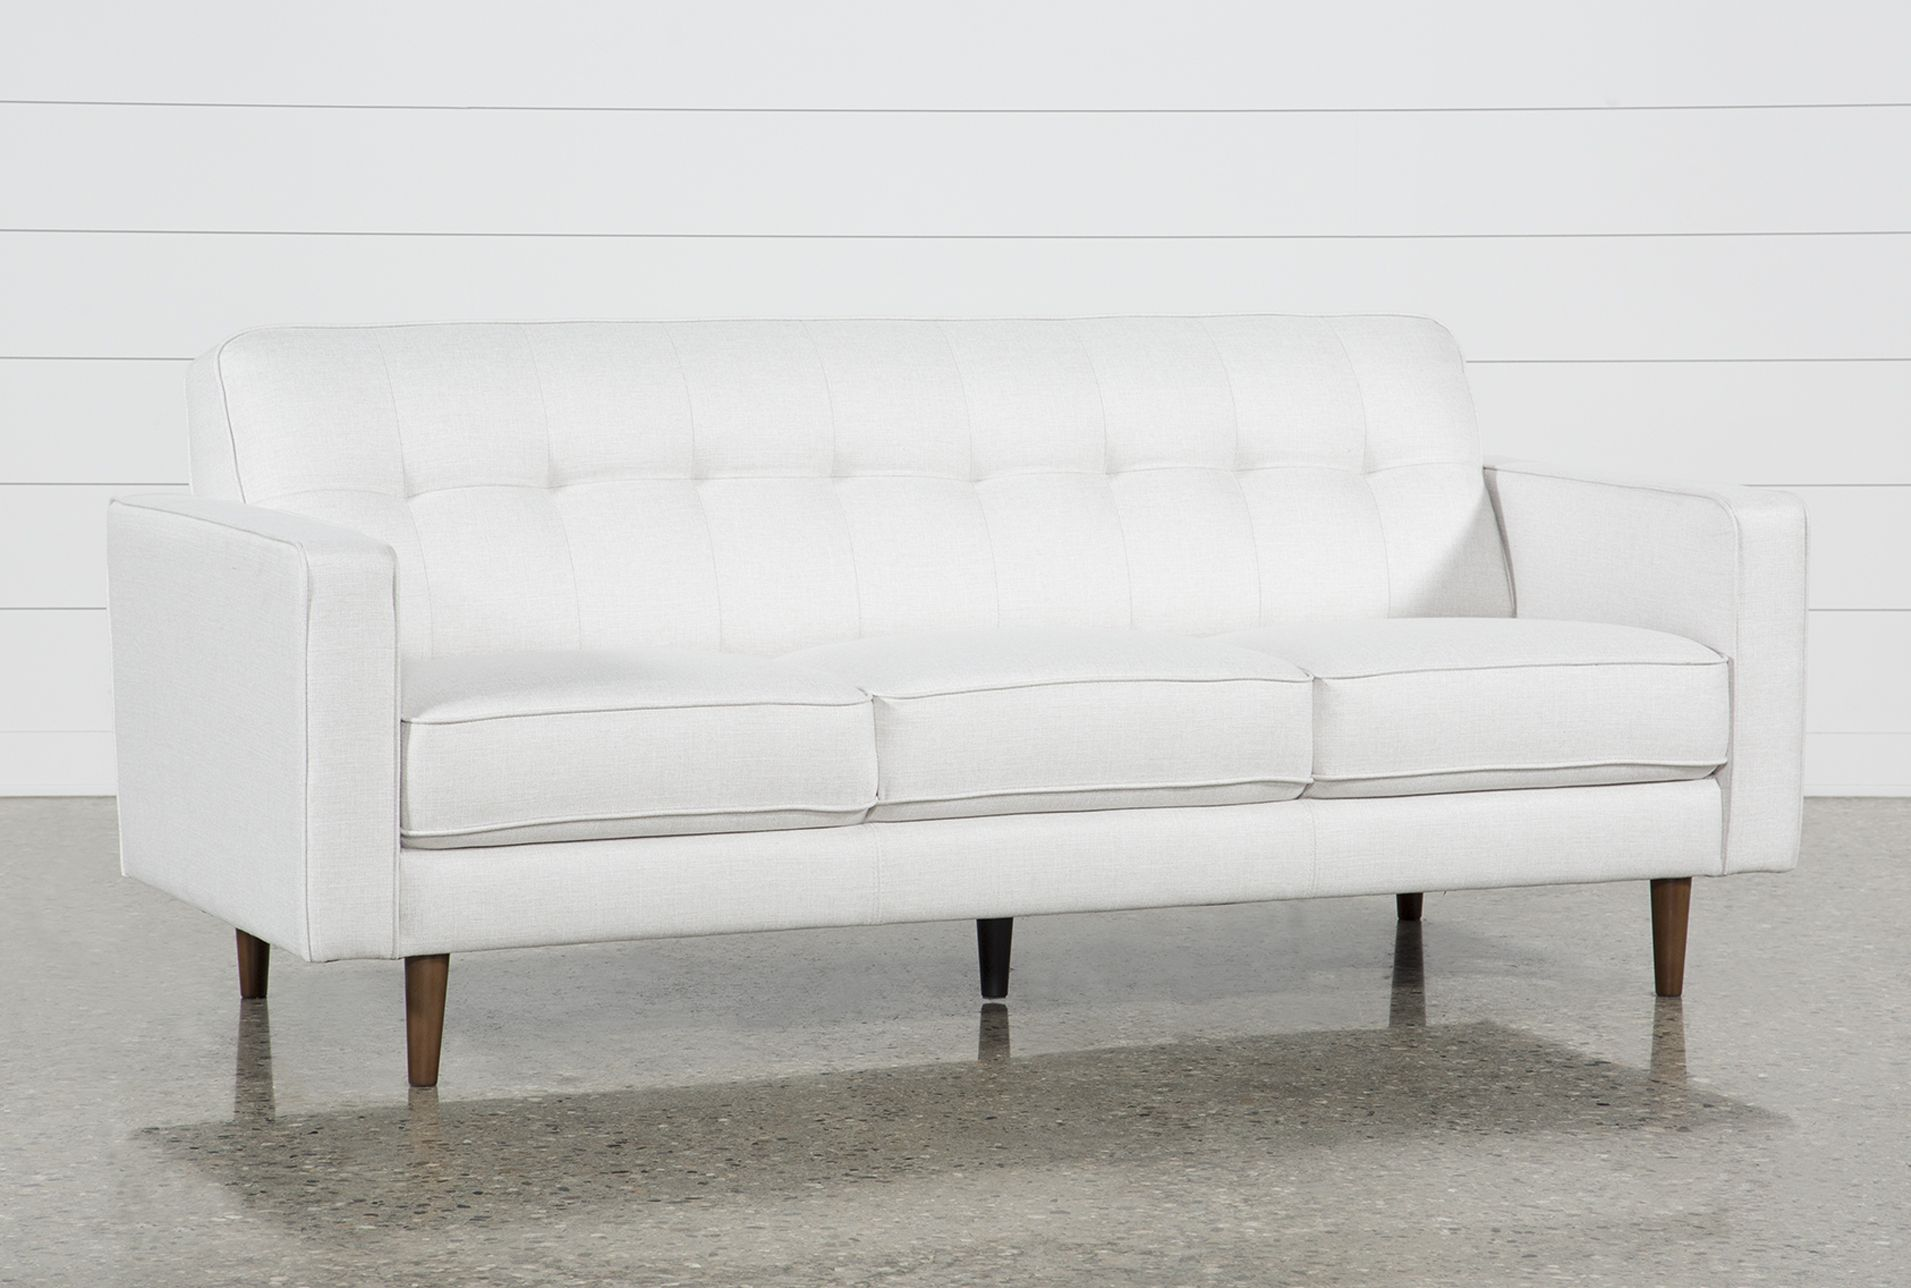 What Are The Pros And Cons Of Sofa Beds White Leather Sofa Bed Leather Sofa Bed White Leather Sofas